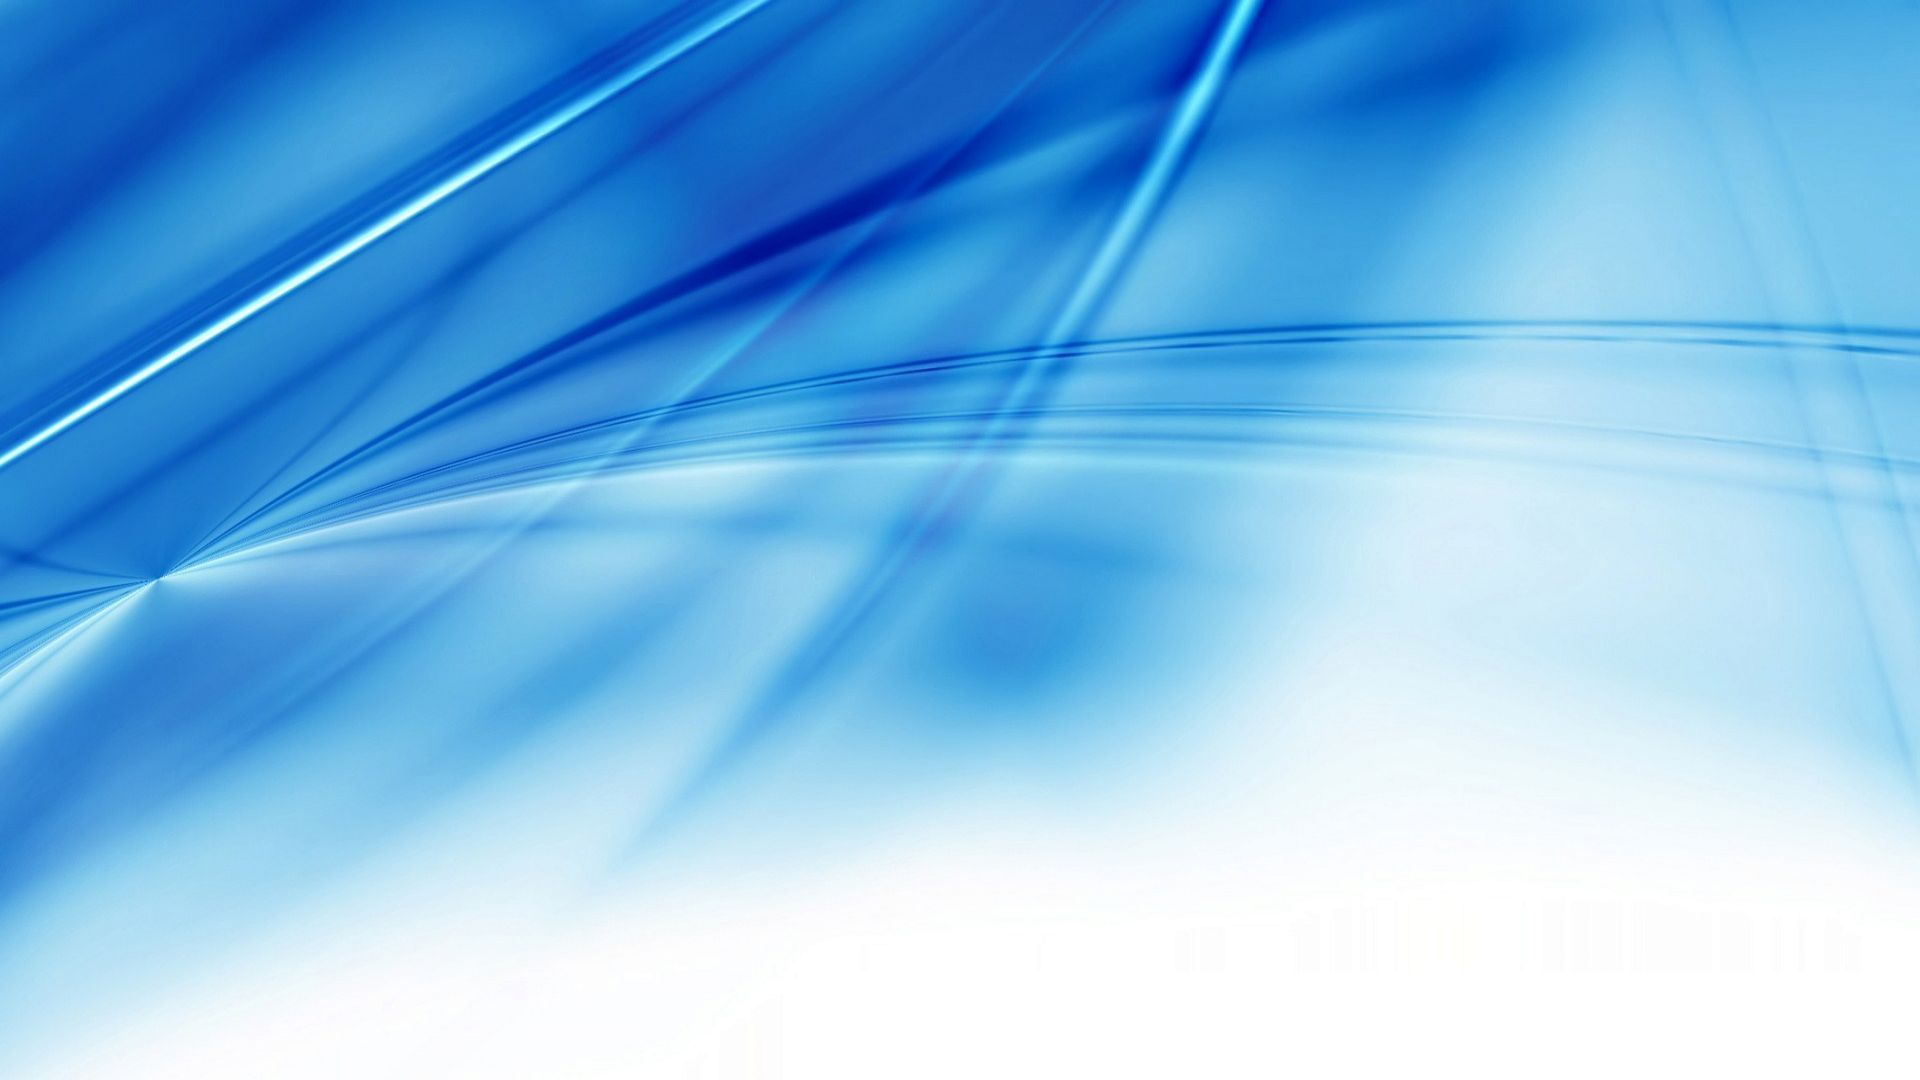 Blue and White wallpaper  1920x1080  336